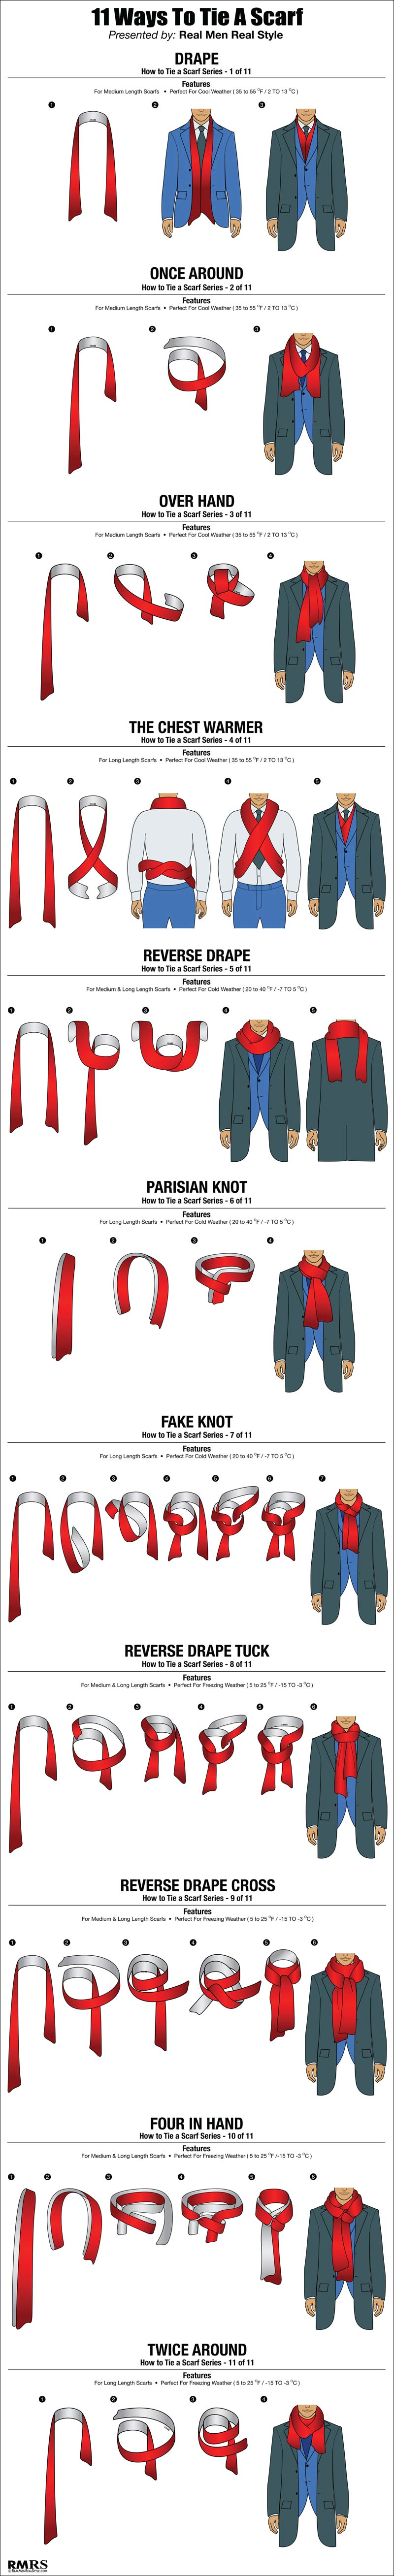 how to tie a scarf chart 11 masculine ways to tie scarves